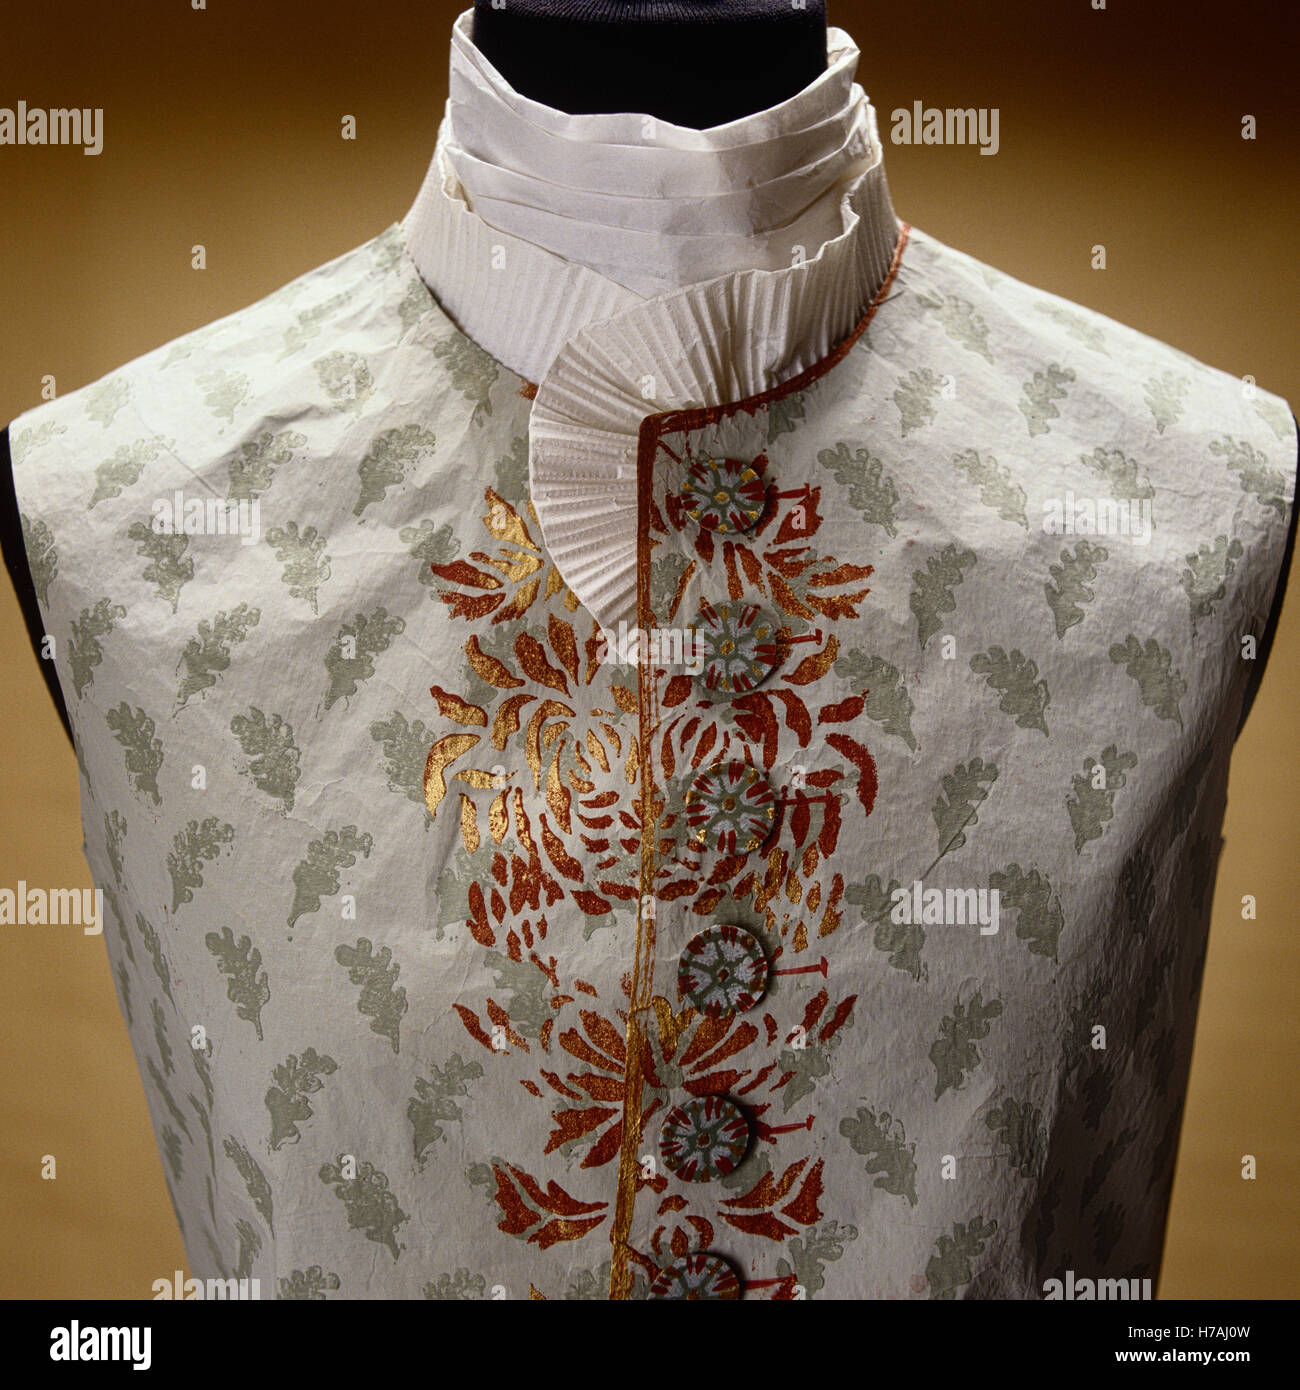 Waistcoat with foliate motif and collar detail, historical replica made of paper by Isabelle de Borchgrave - Stock Image